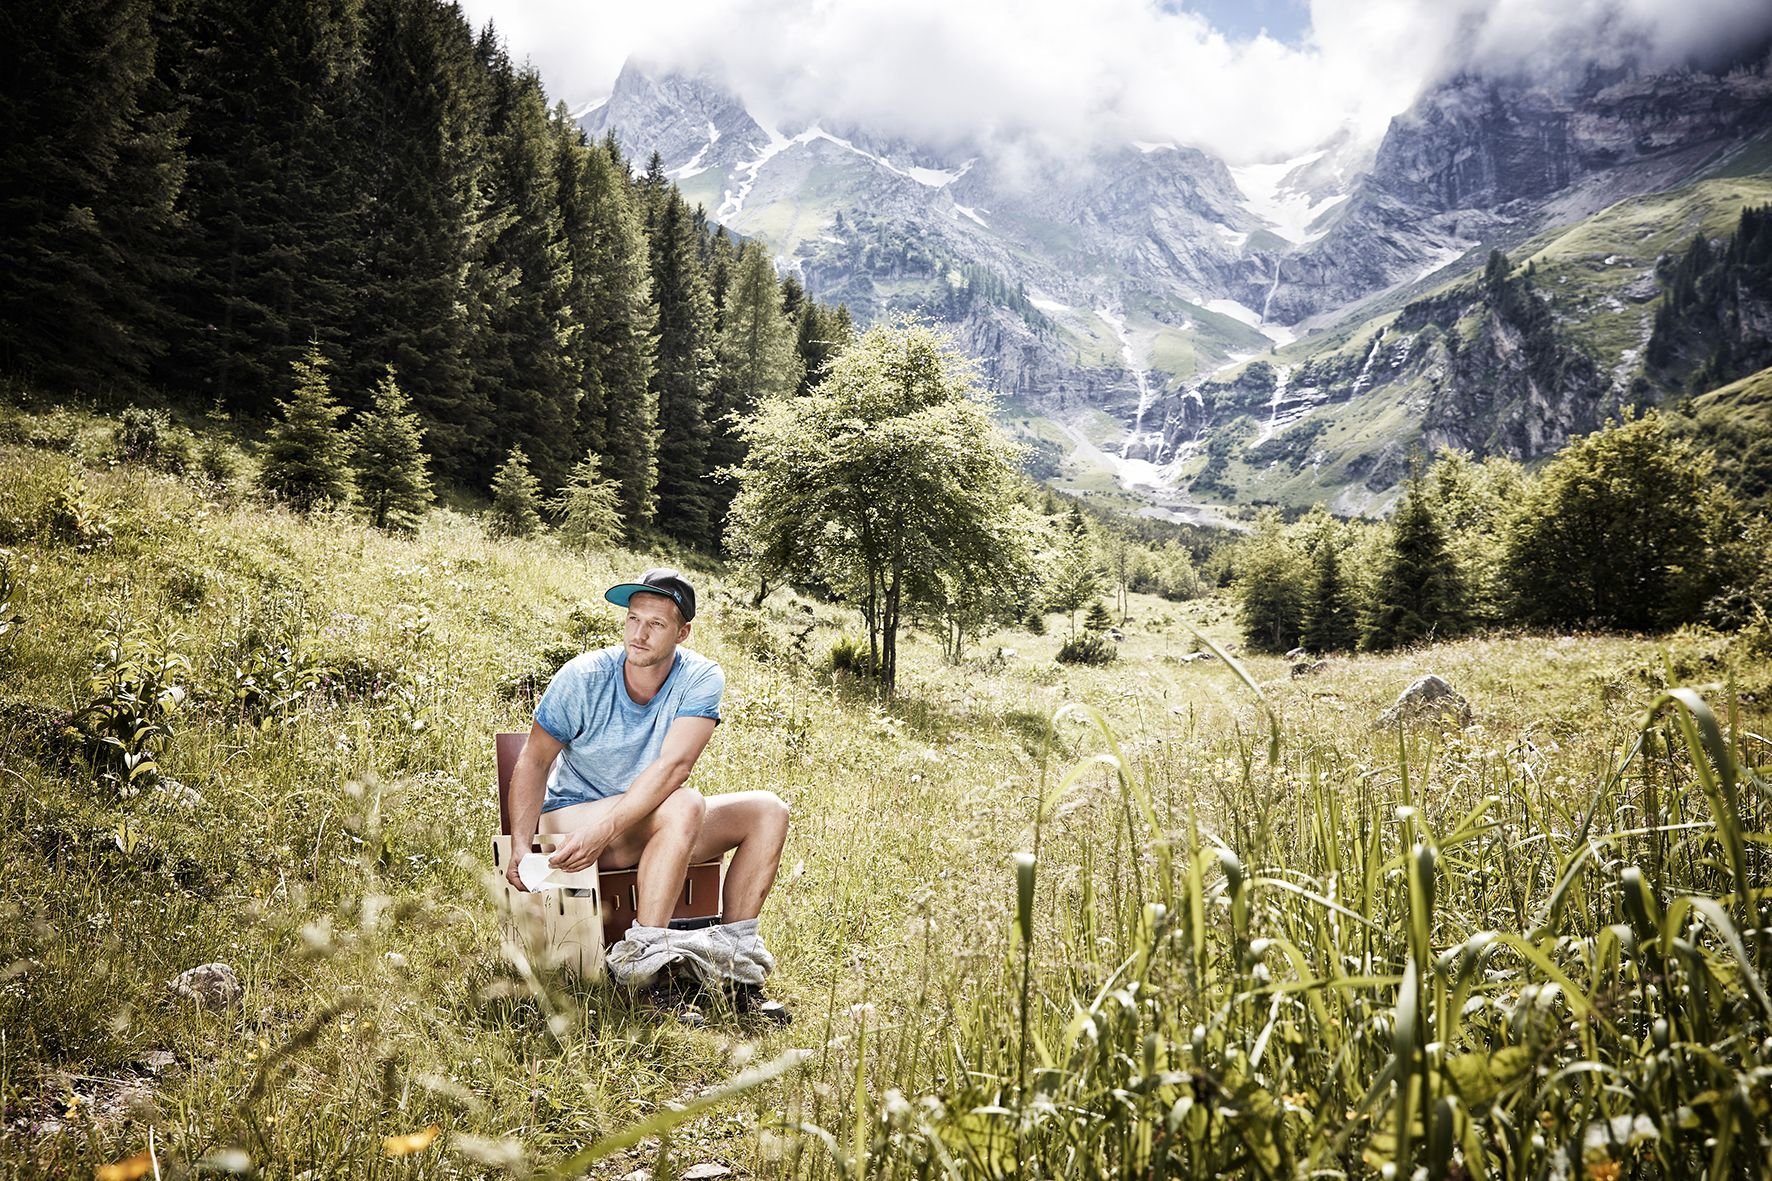 When nature calls - a man sitting on a portable toilet in the great outdoors